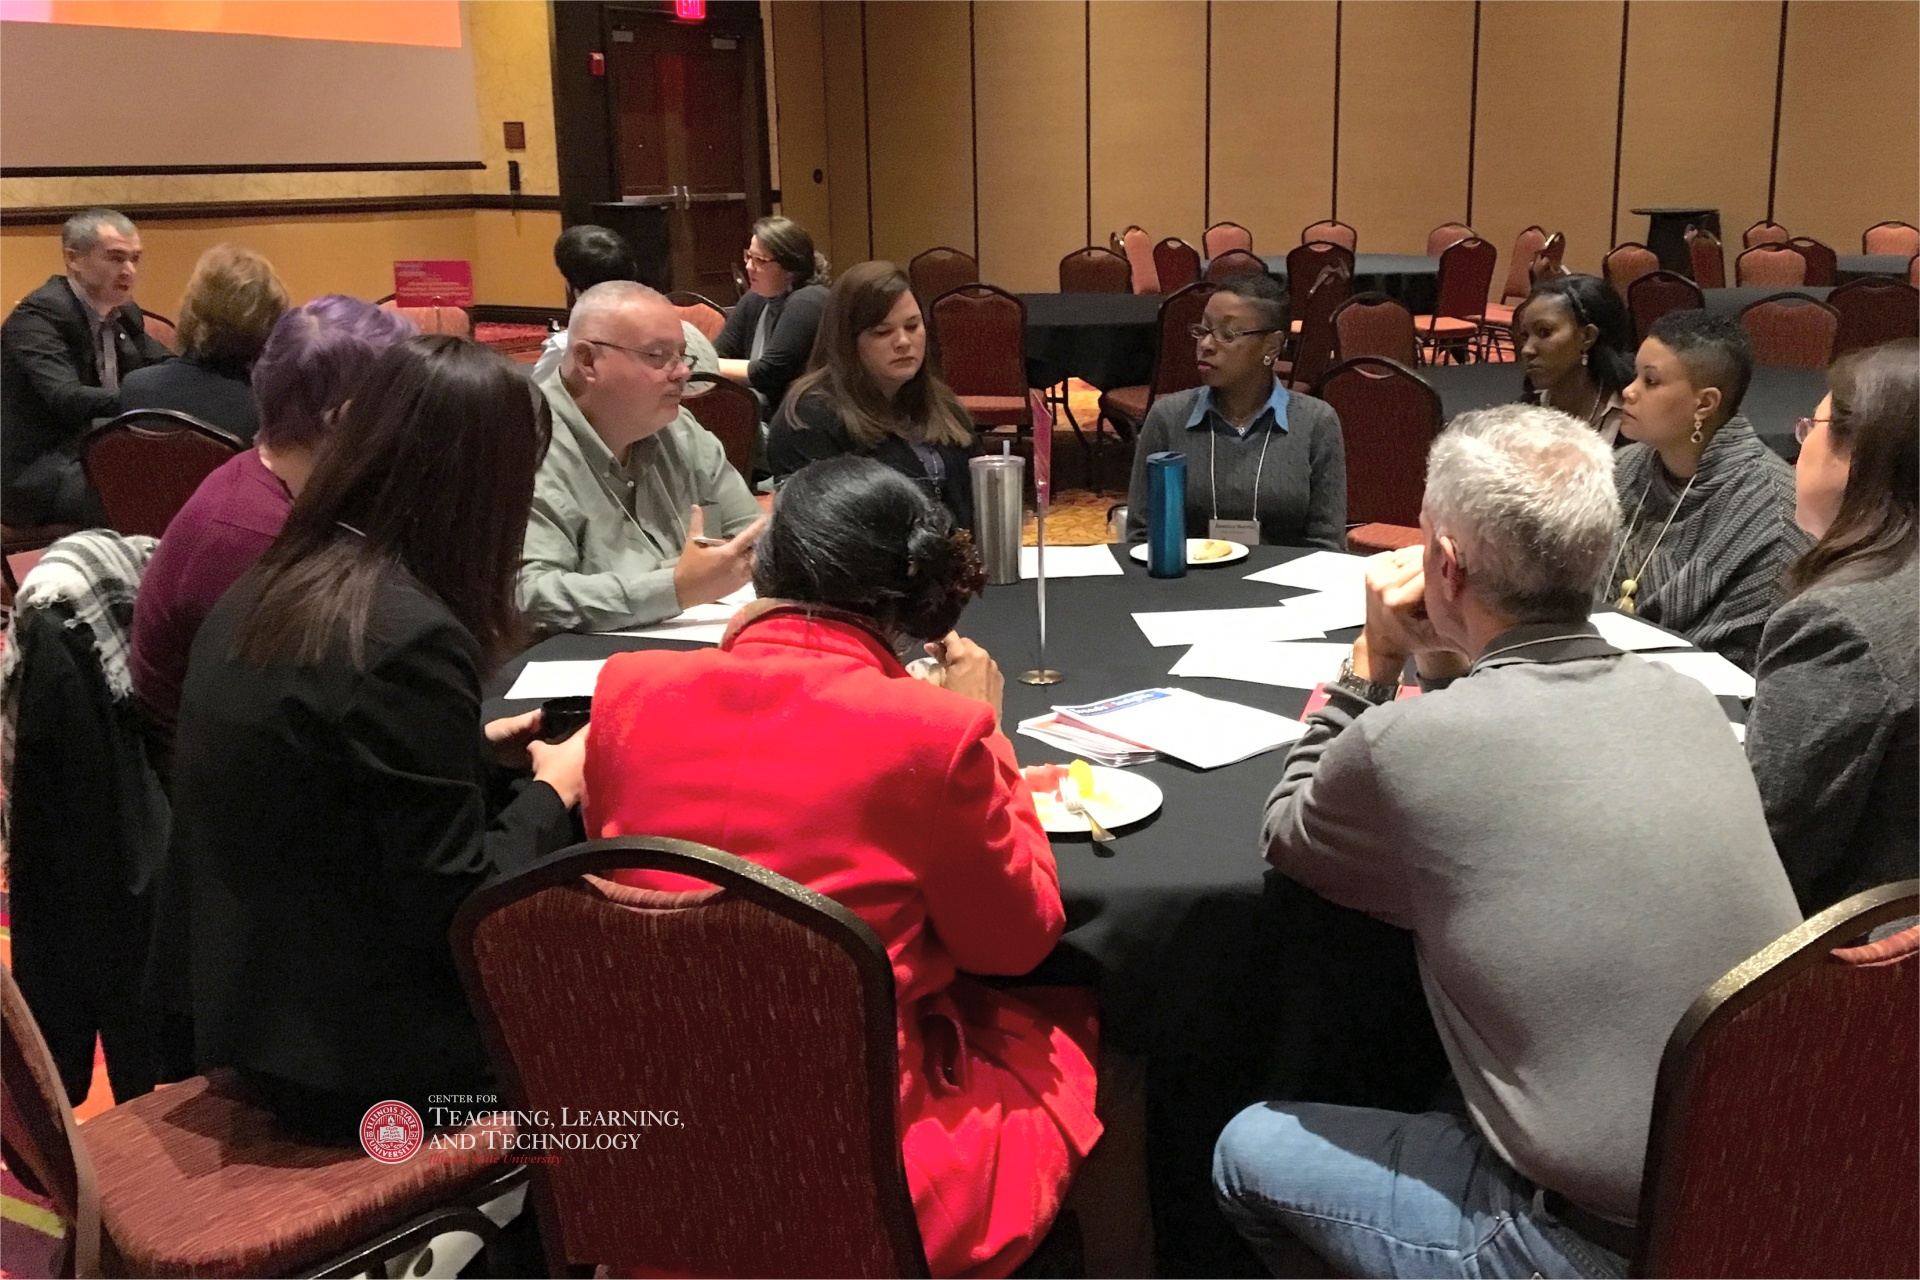 Faculty and staff discussing deep issues at the 2018 University-Wide Teaching & Learning Symposium